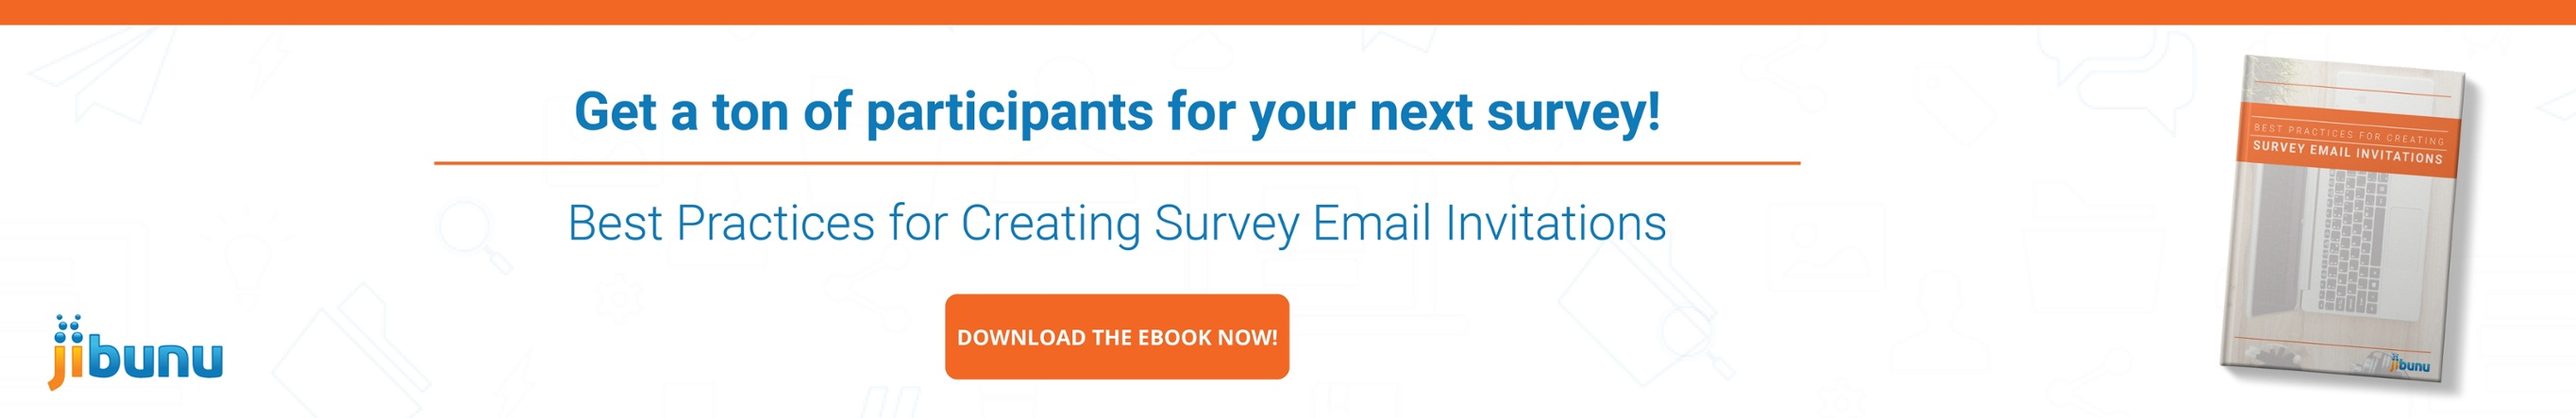 Best Practices for Creating Survey Email Invitations